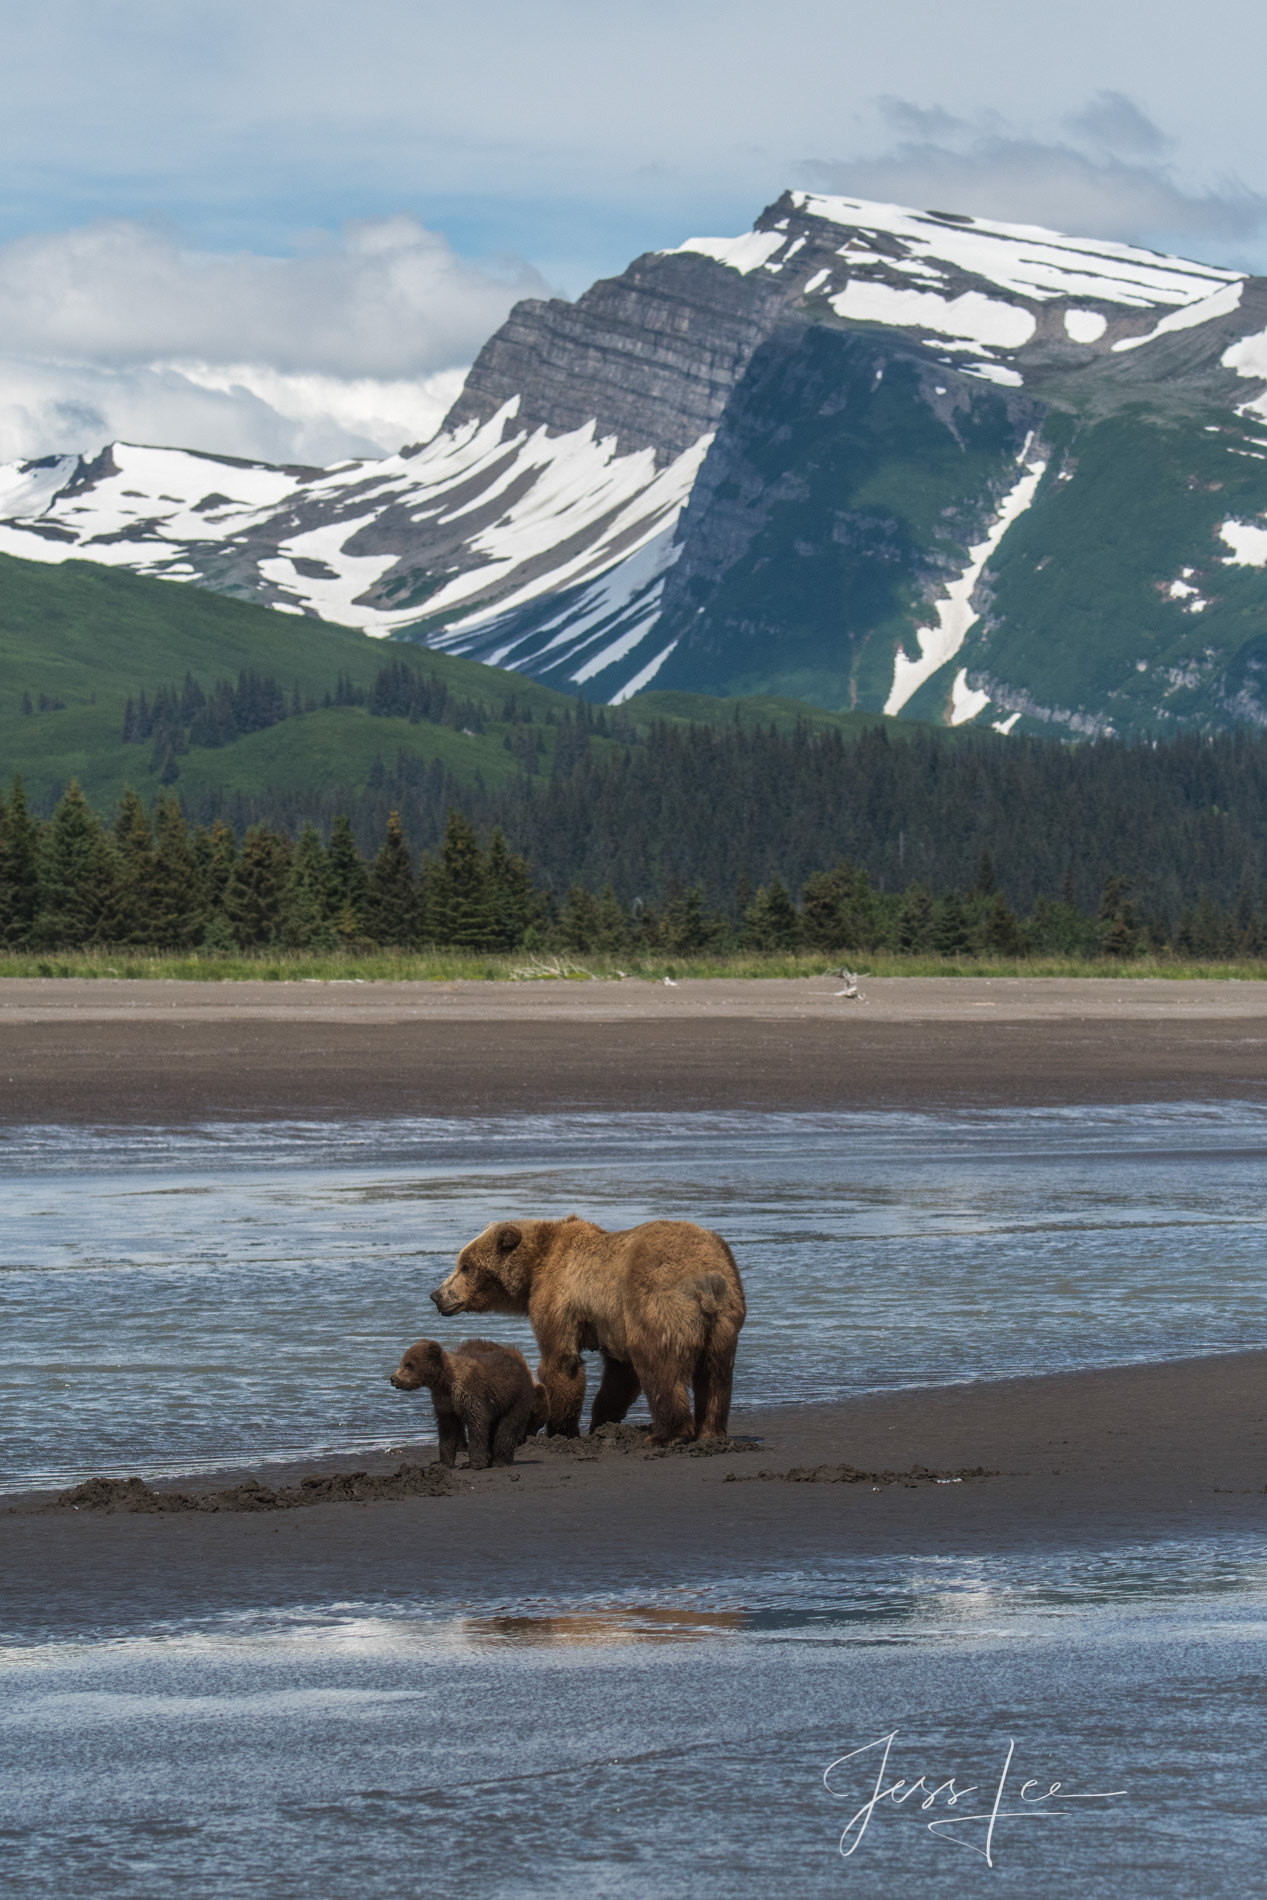 grizzly, beare, bears, brown bear, cubs, wildlife photographer famous, best,, photo